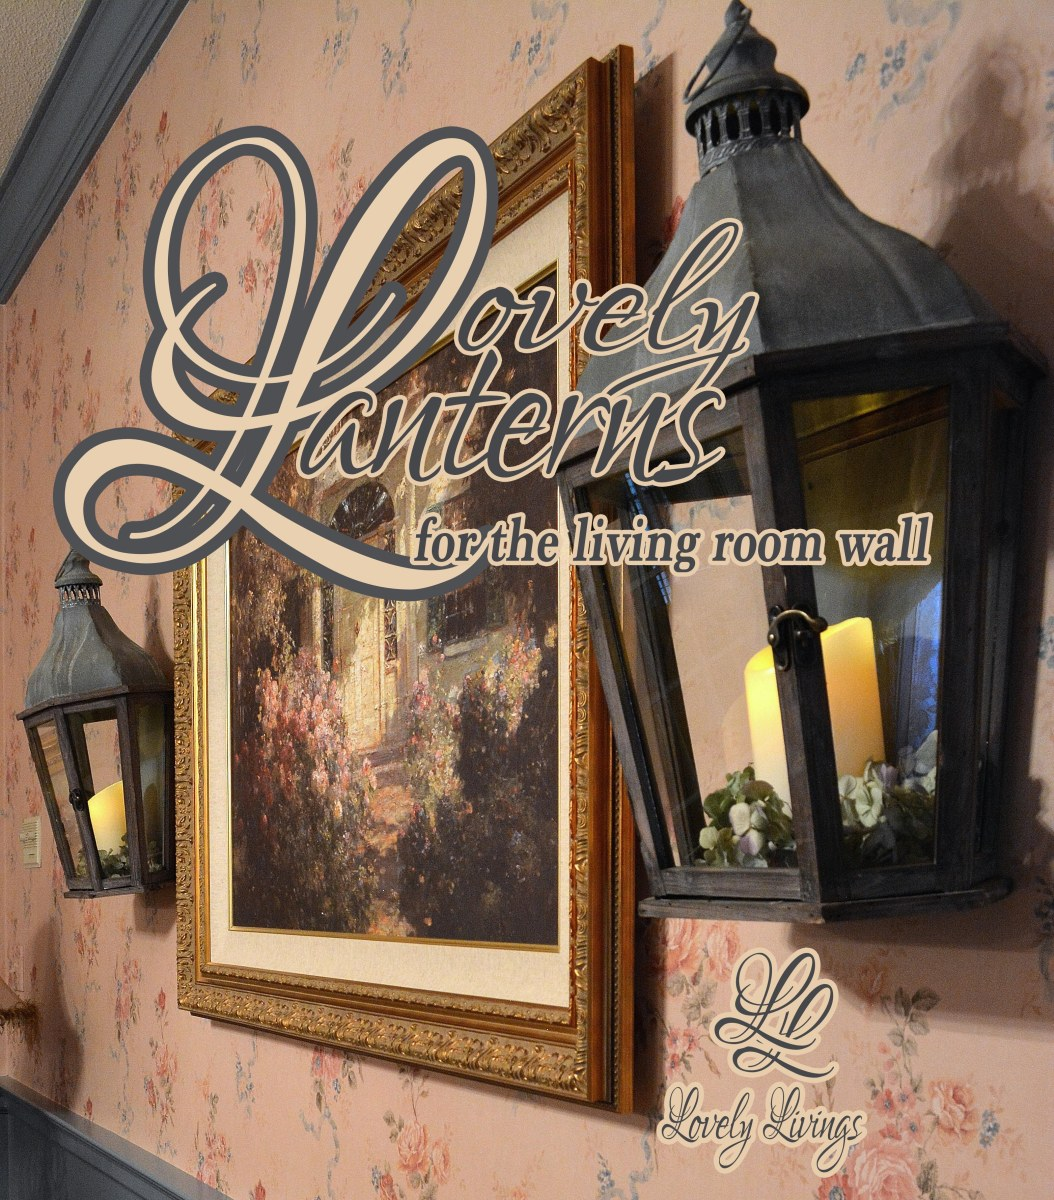 Wall Lantern Living Room : Lovely Lanterns for the Living Room Wall